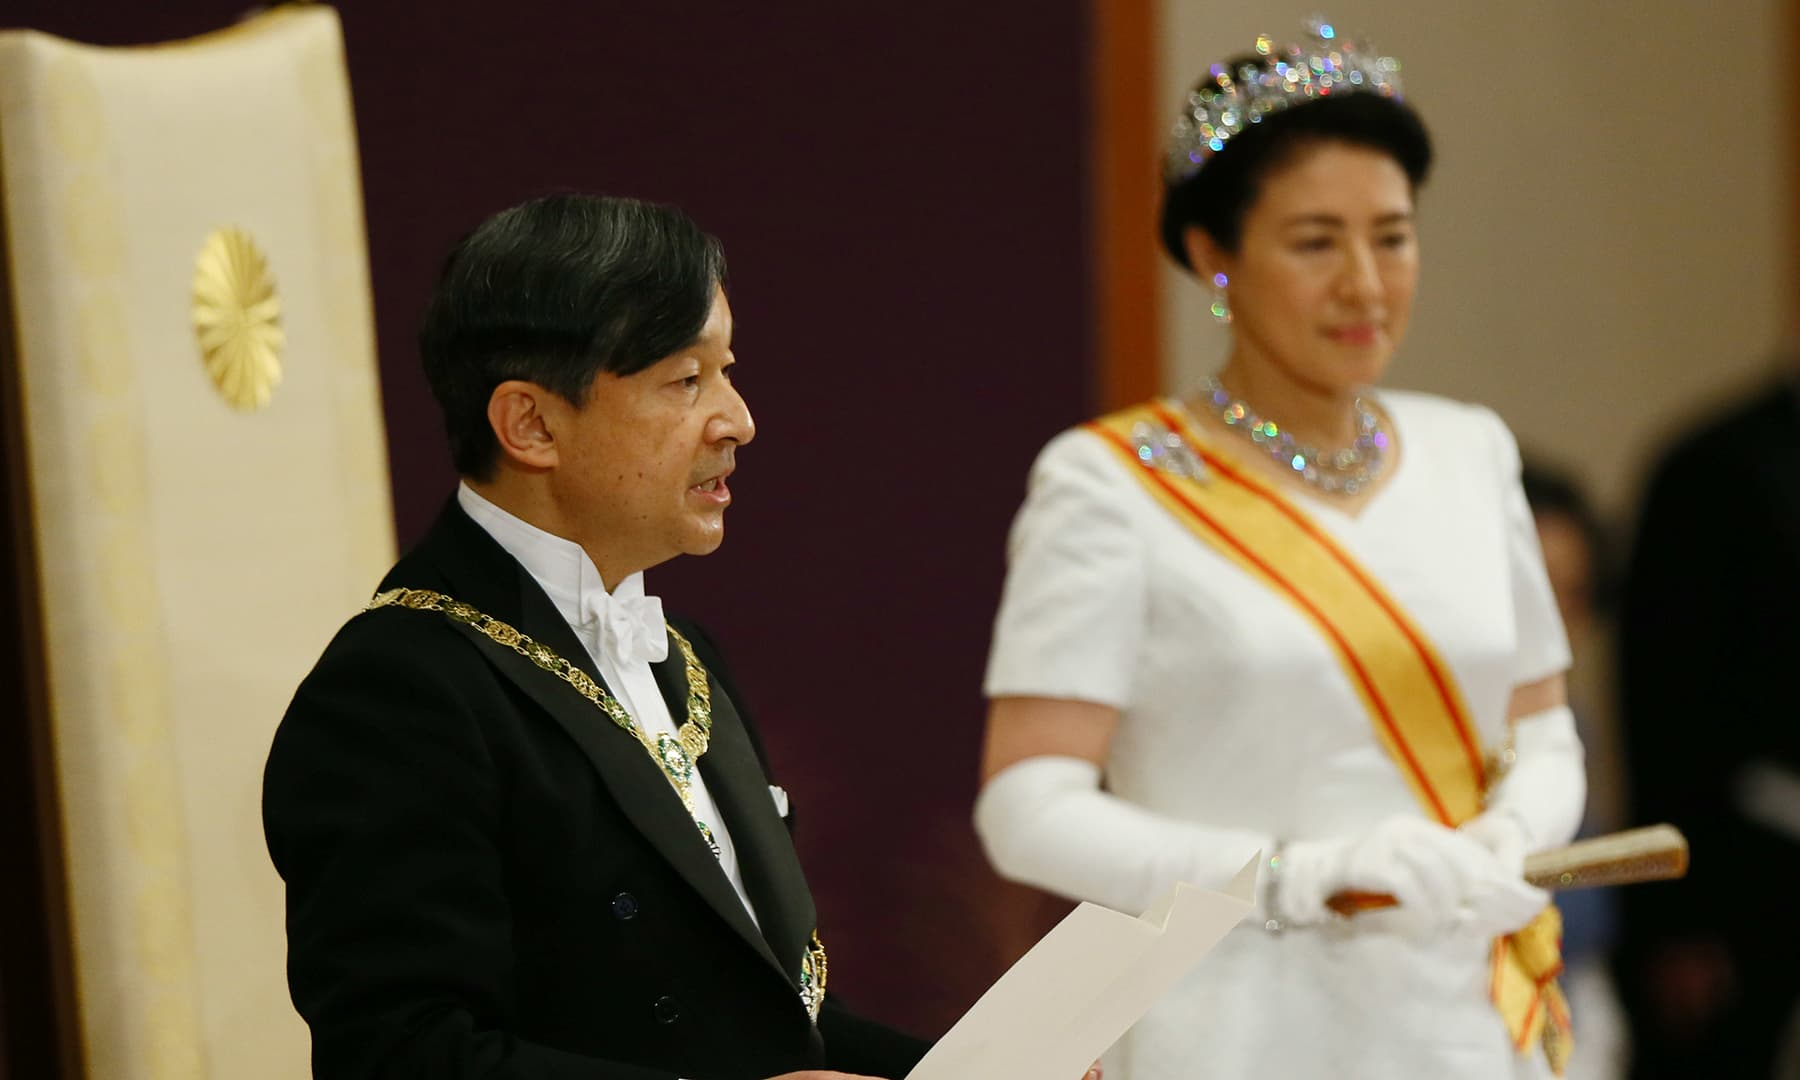 Japan's Emperor Naruhito, flanked by Empress Masako, delivers a speech during a ceremony called Sokui-go-Choken-no-gi, his first audience after the accession to the throne, at the Imperial Palace in Tokyo. — Reuters